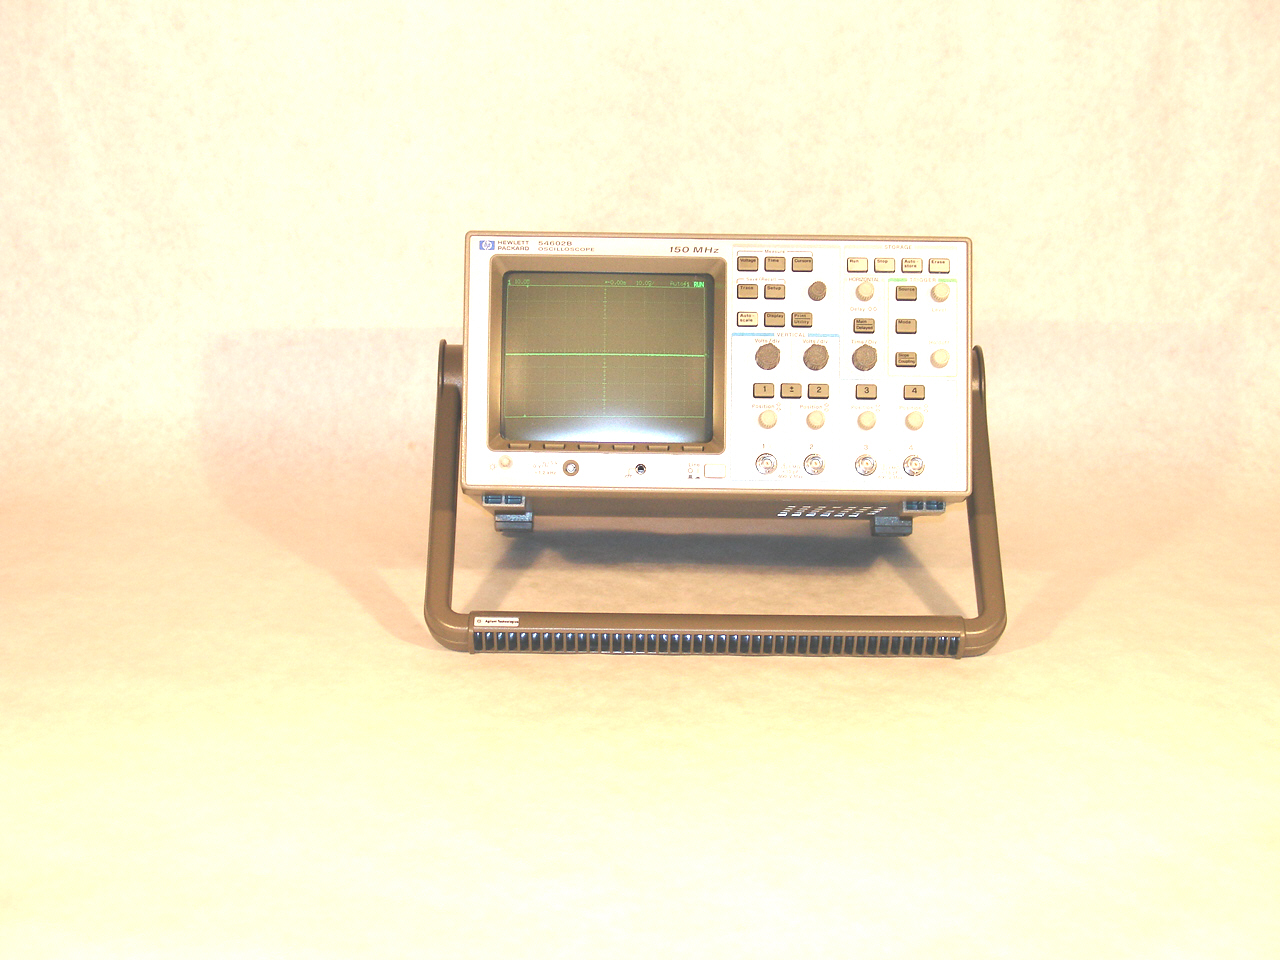 Agilent / HP 54602A for sale